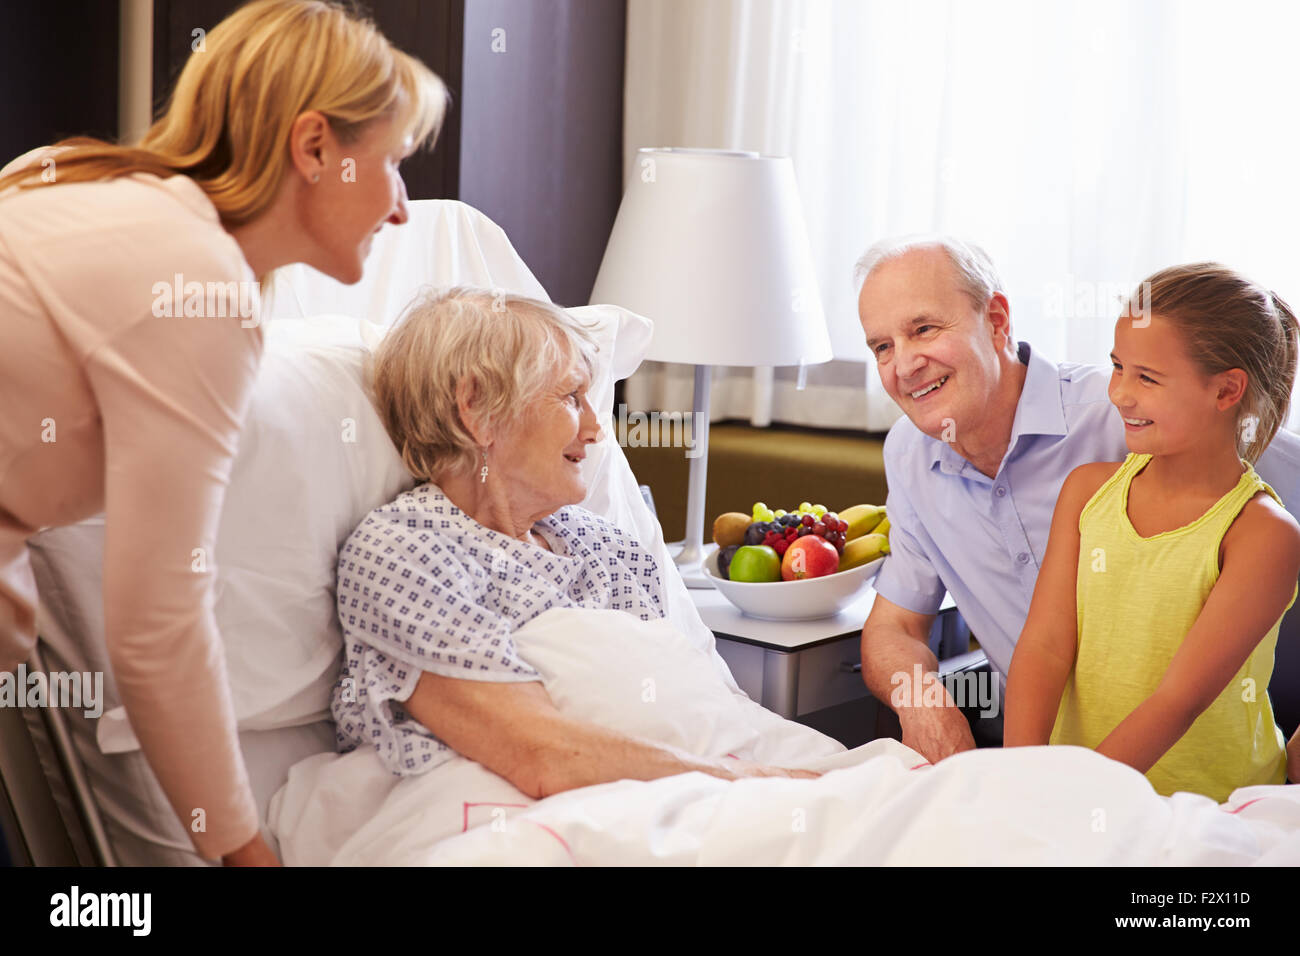 Family Visit To Grandmother In Hospital Bed - Stock Image